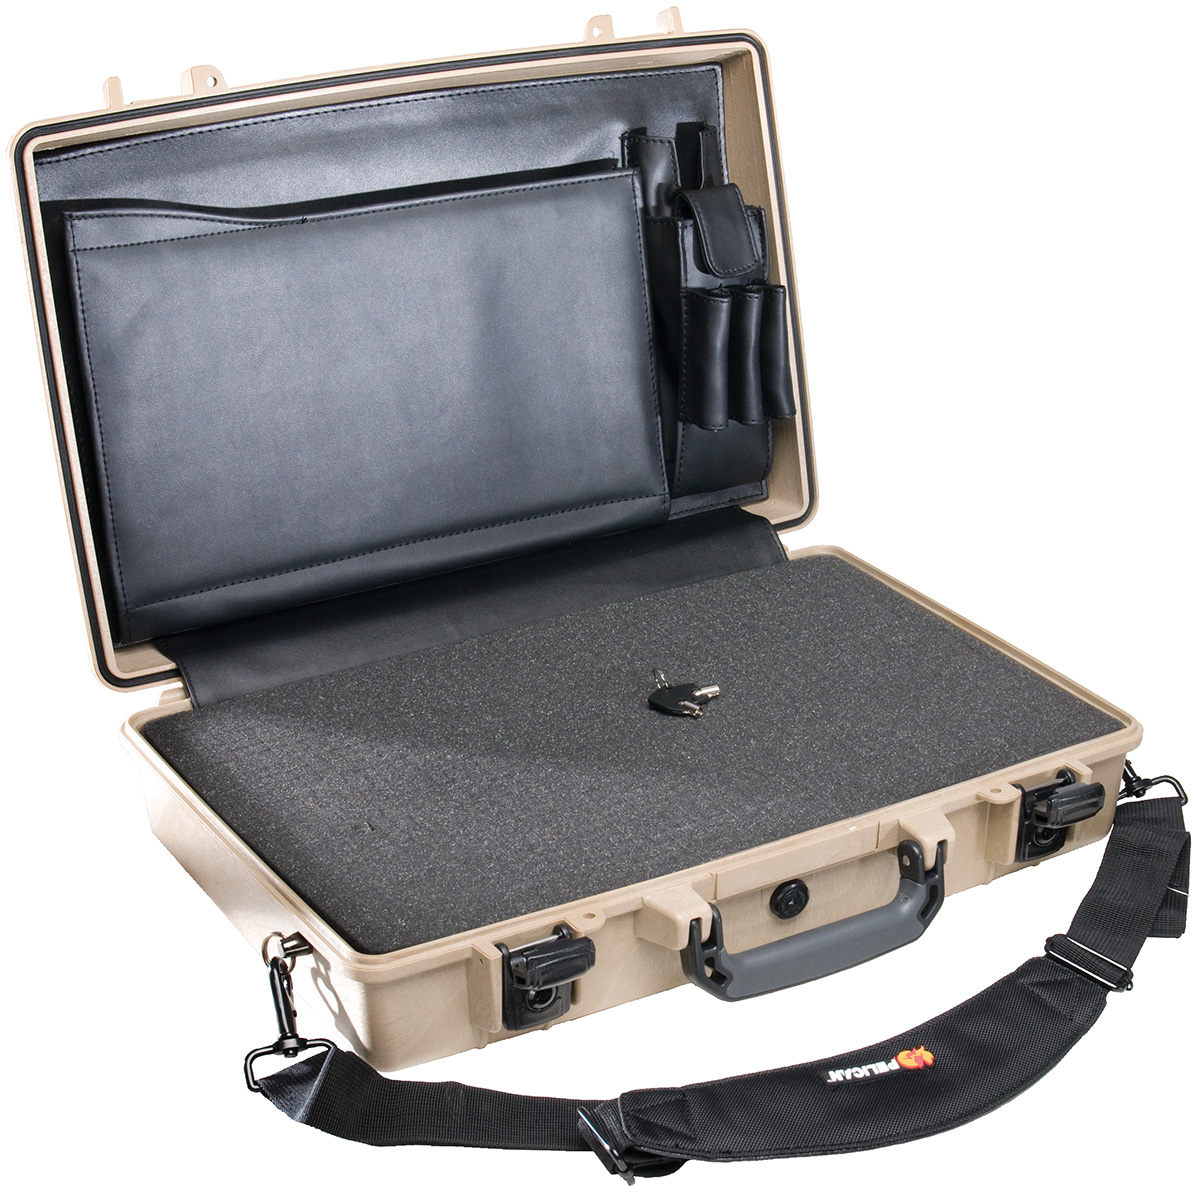 pelican peli products 1490CC2 crush dust proof laptop hardcase